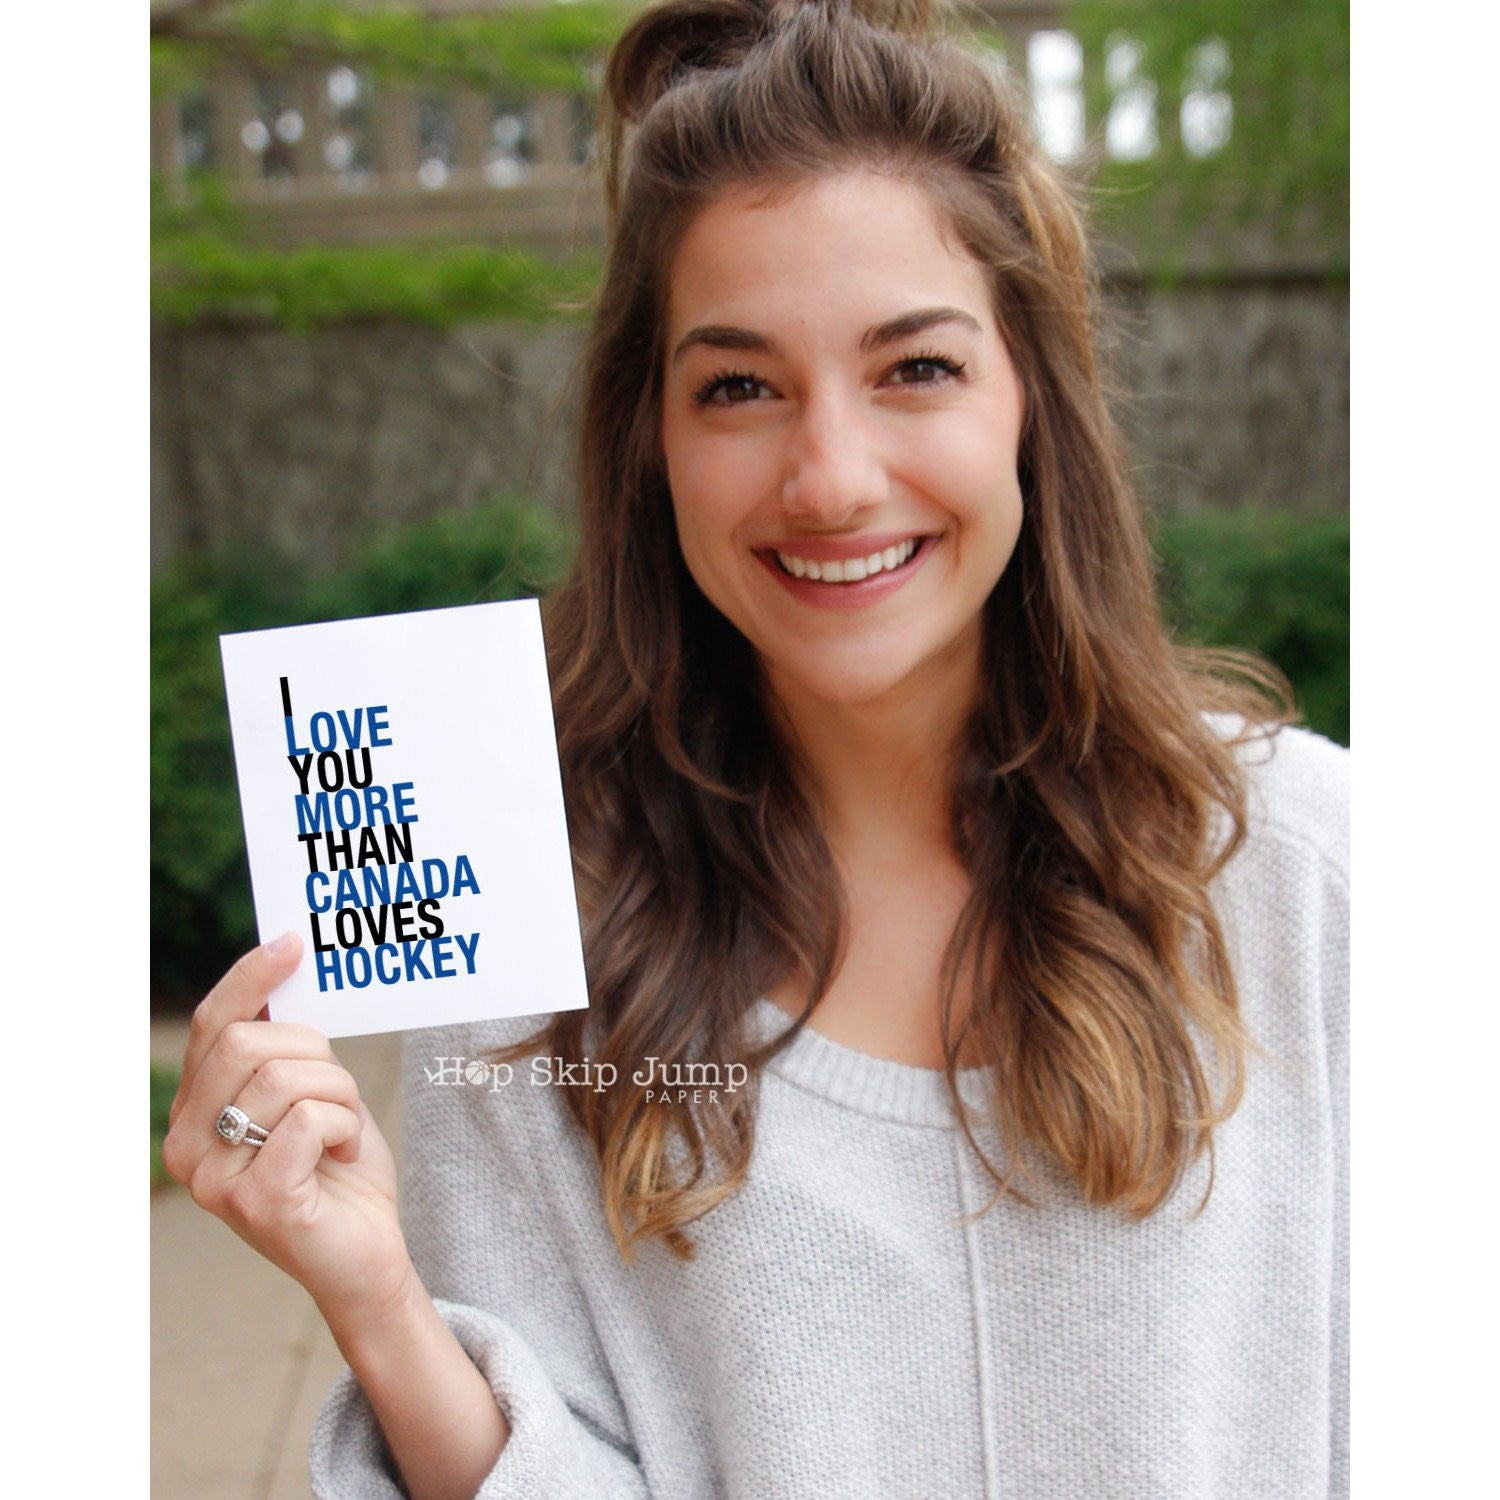 I Love You More Than Canada Loves Hockey, Blue and Black,  greeting card  - Shop Online